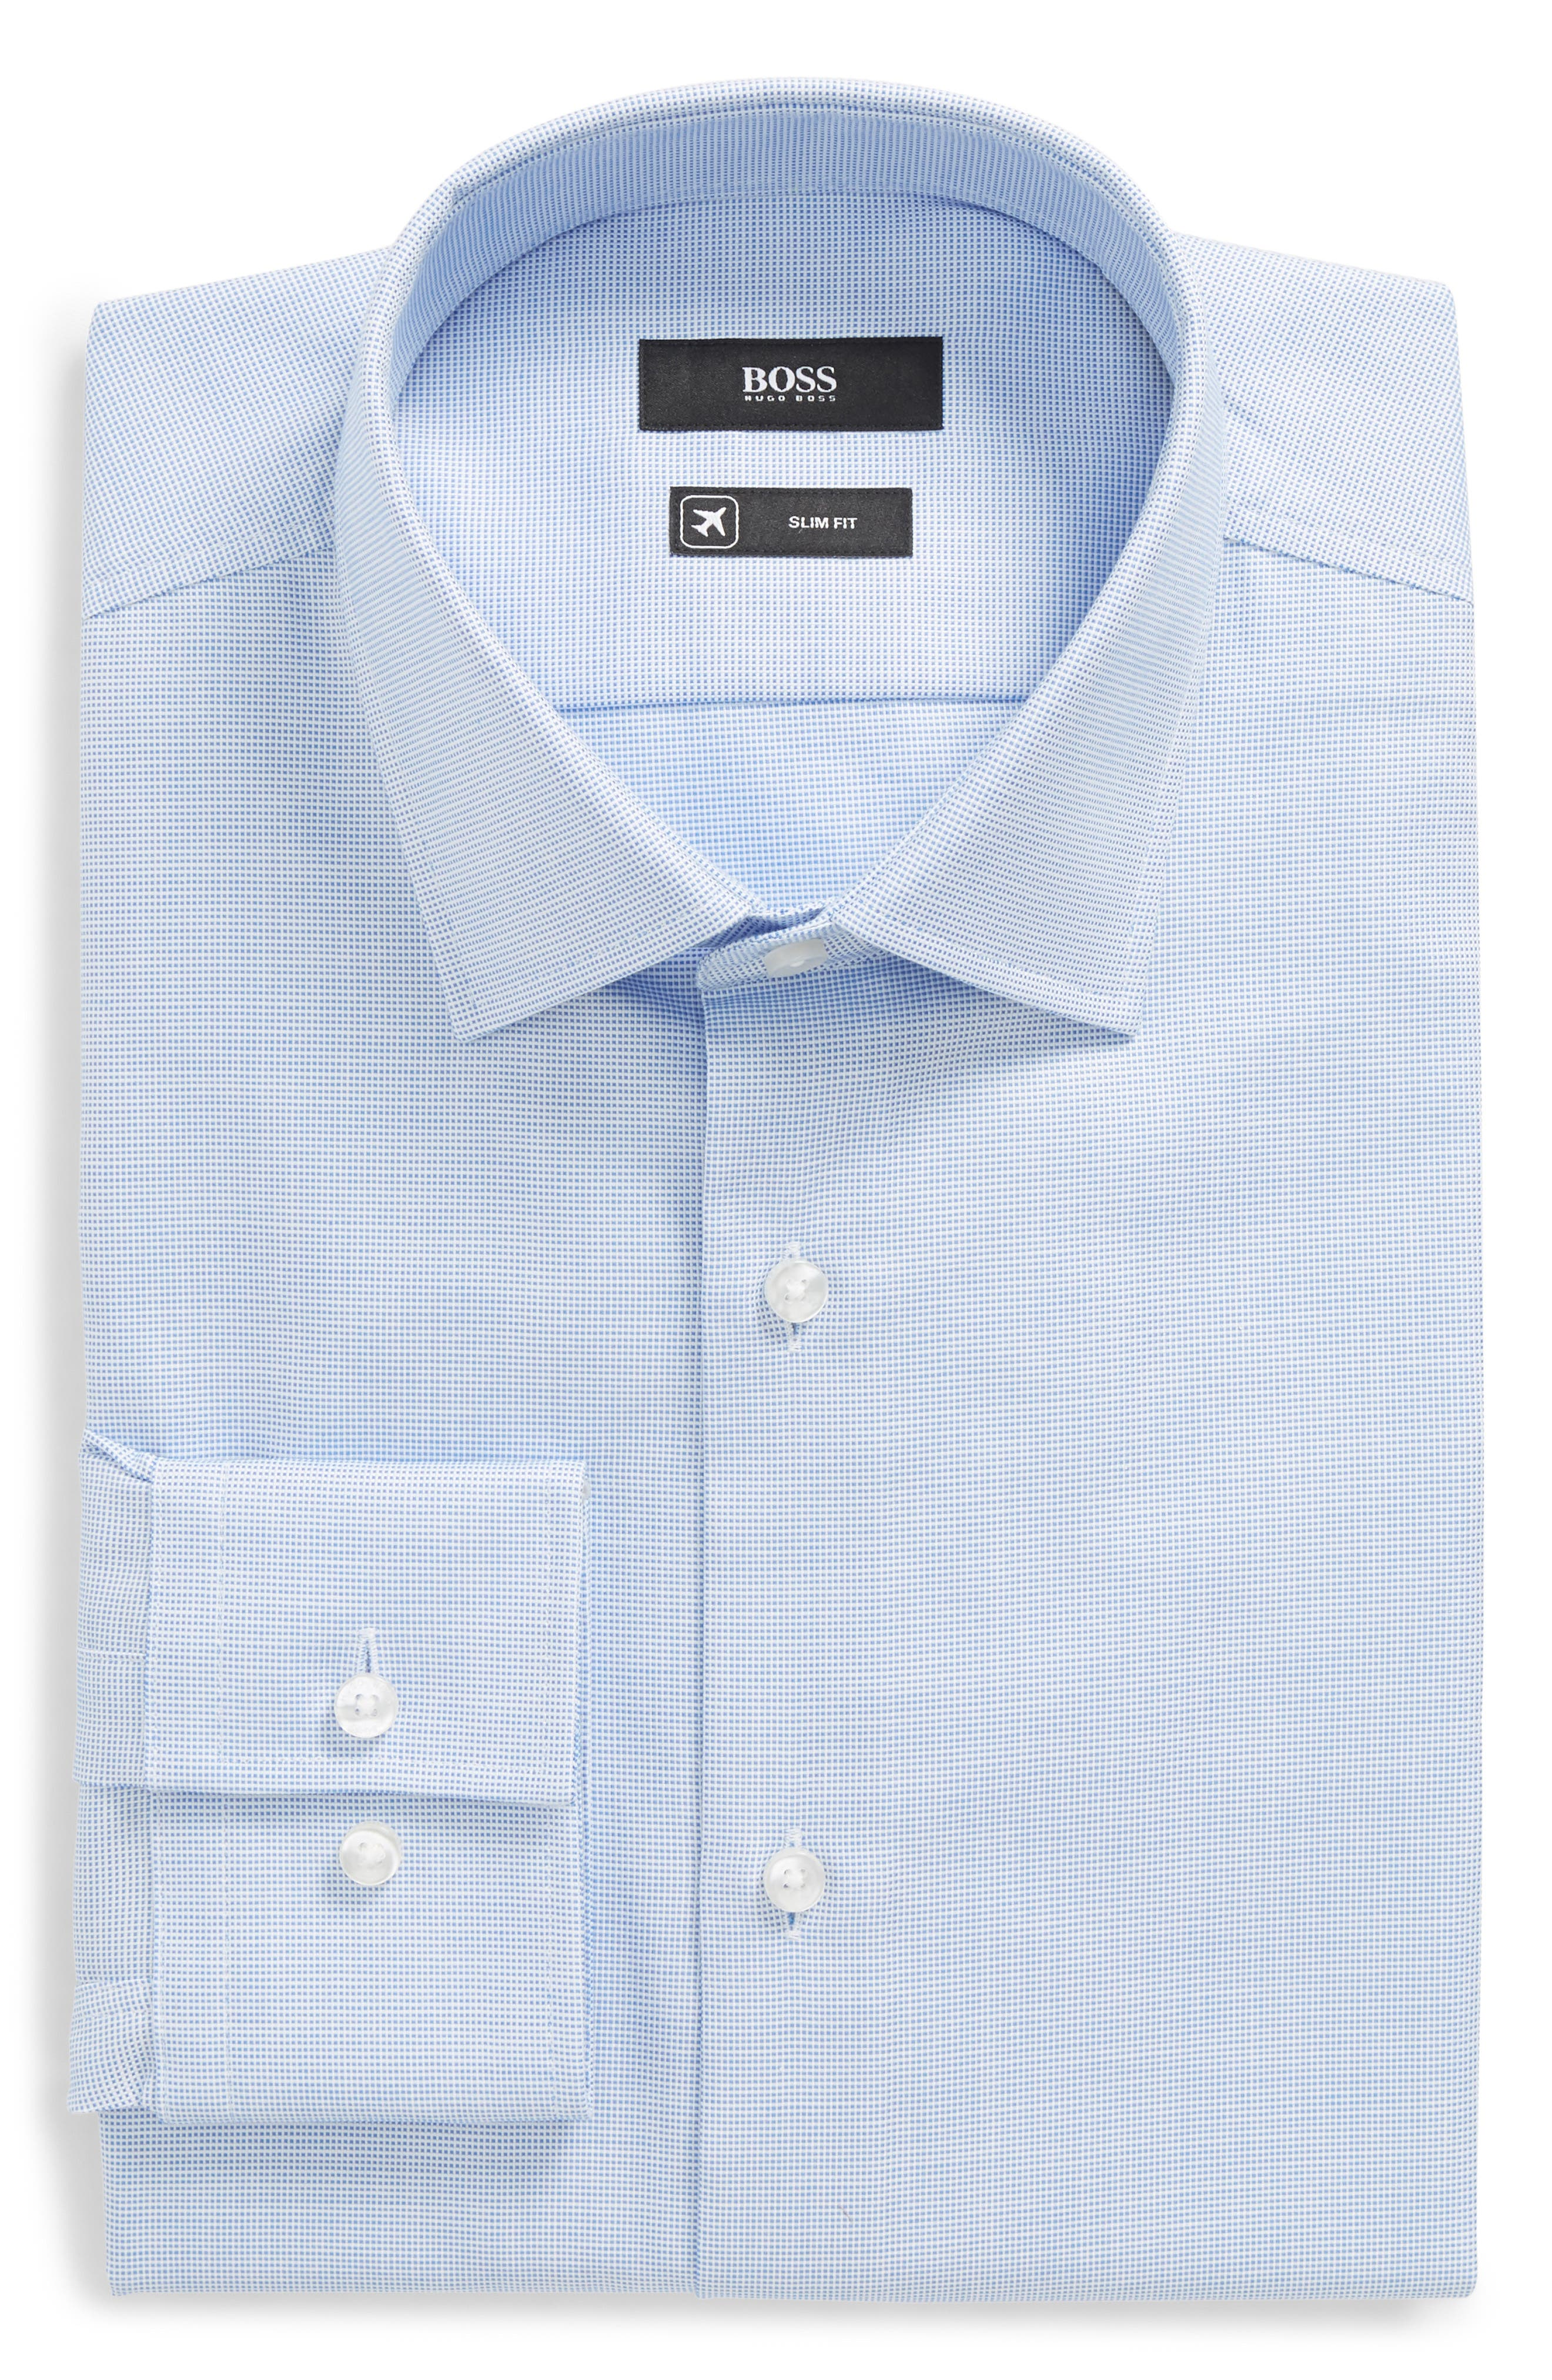 Jenno Slim Fit Solid Dress Shirt,                             Main thumbnail 1, color,                             433